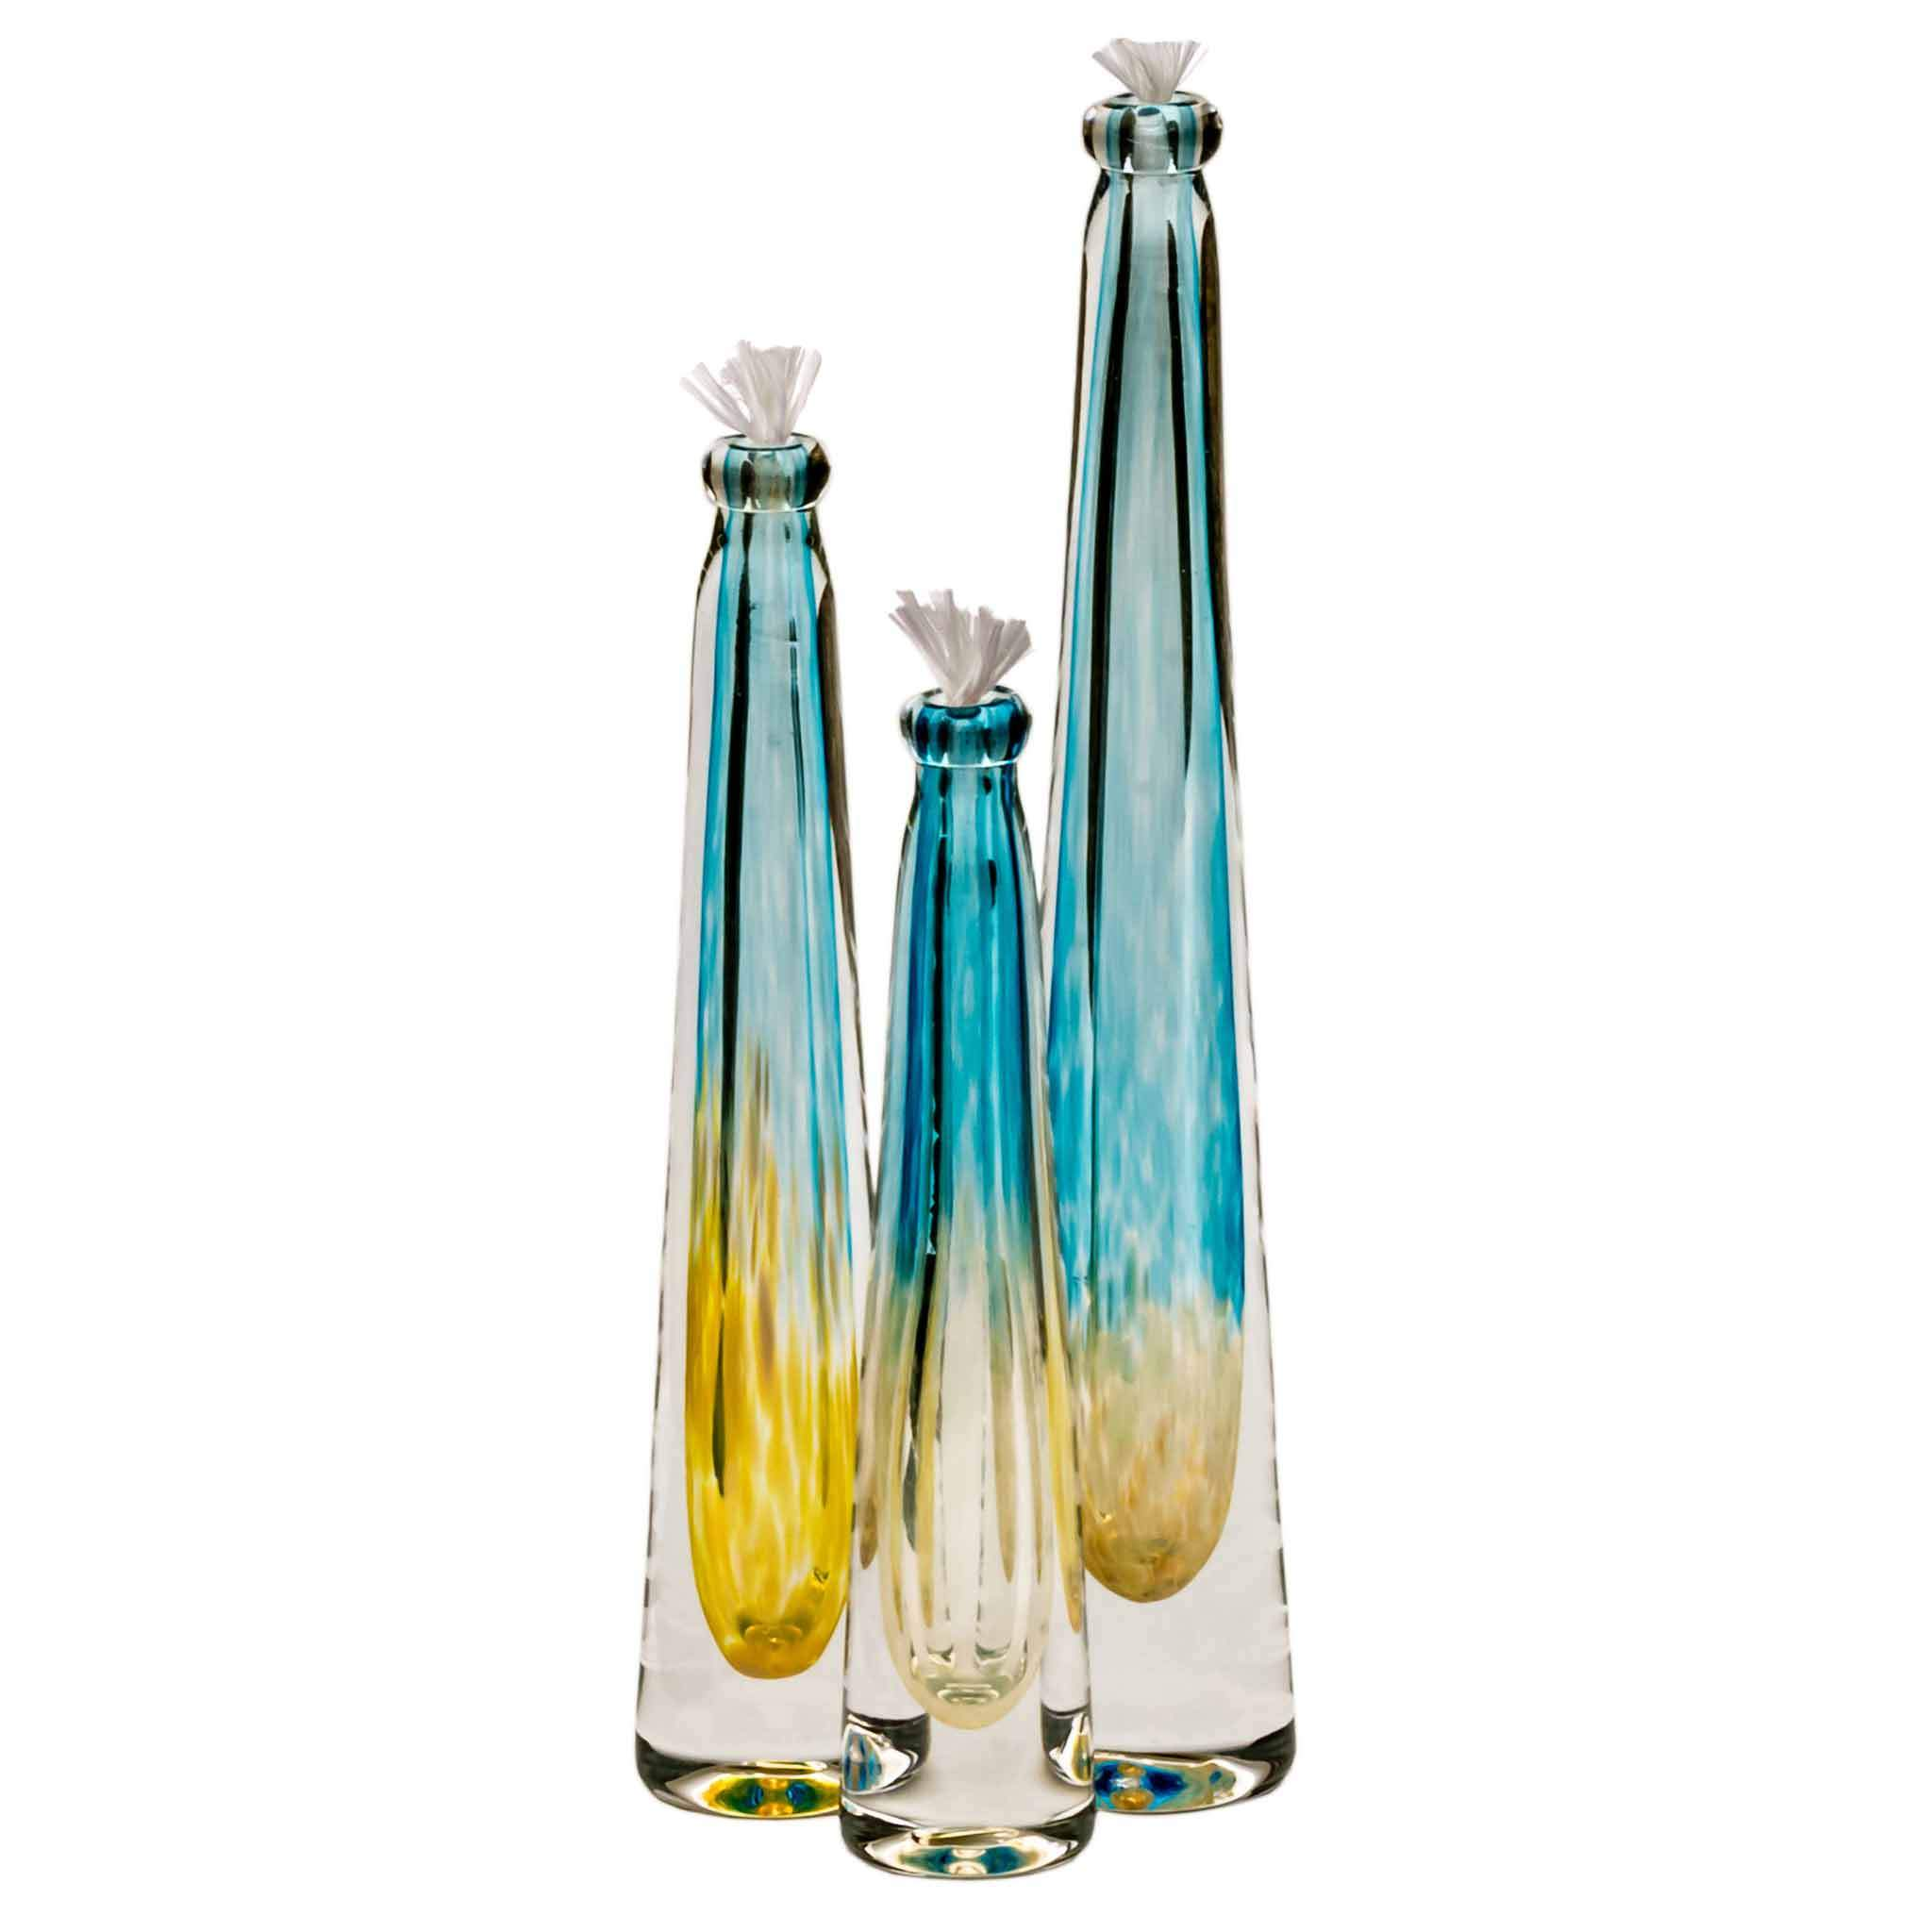 Hudson Glass Two Tone Oil Lamp 7001 3 Artistic Artisan Handcrafted